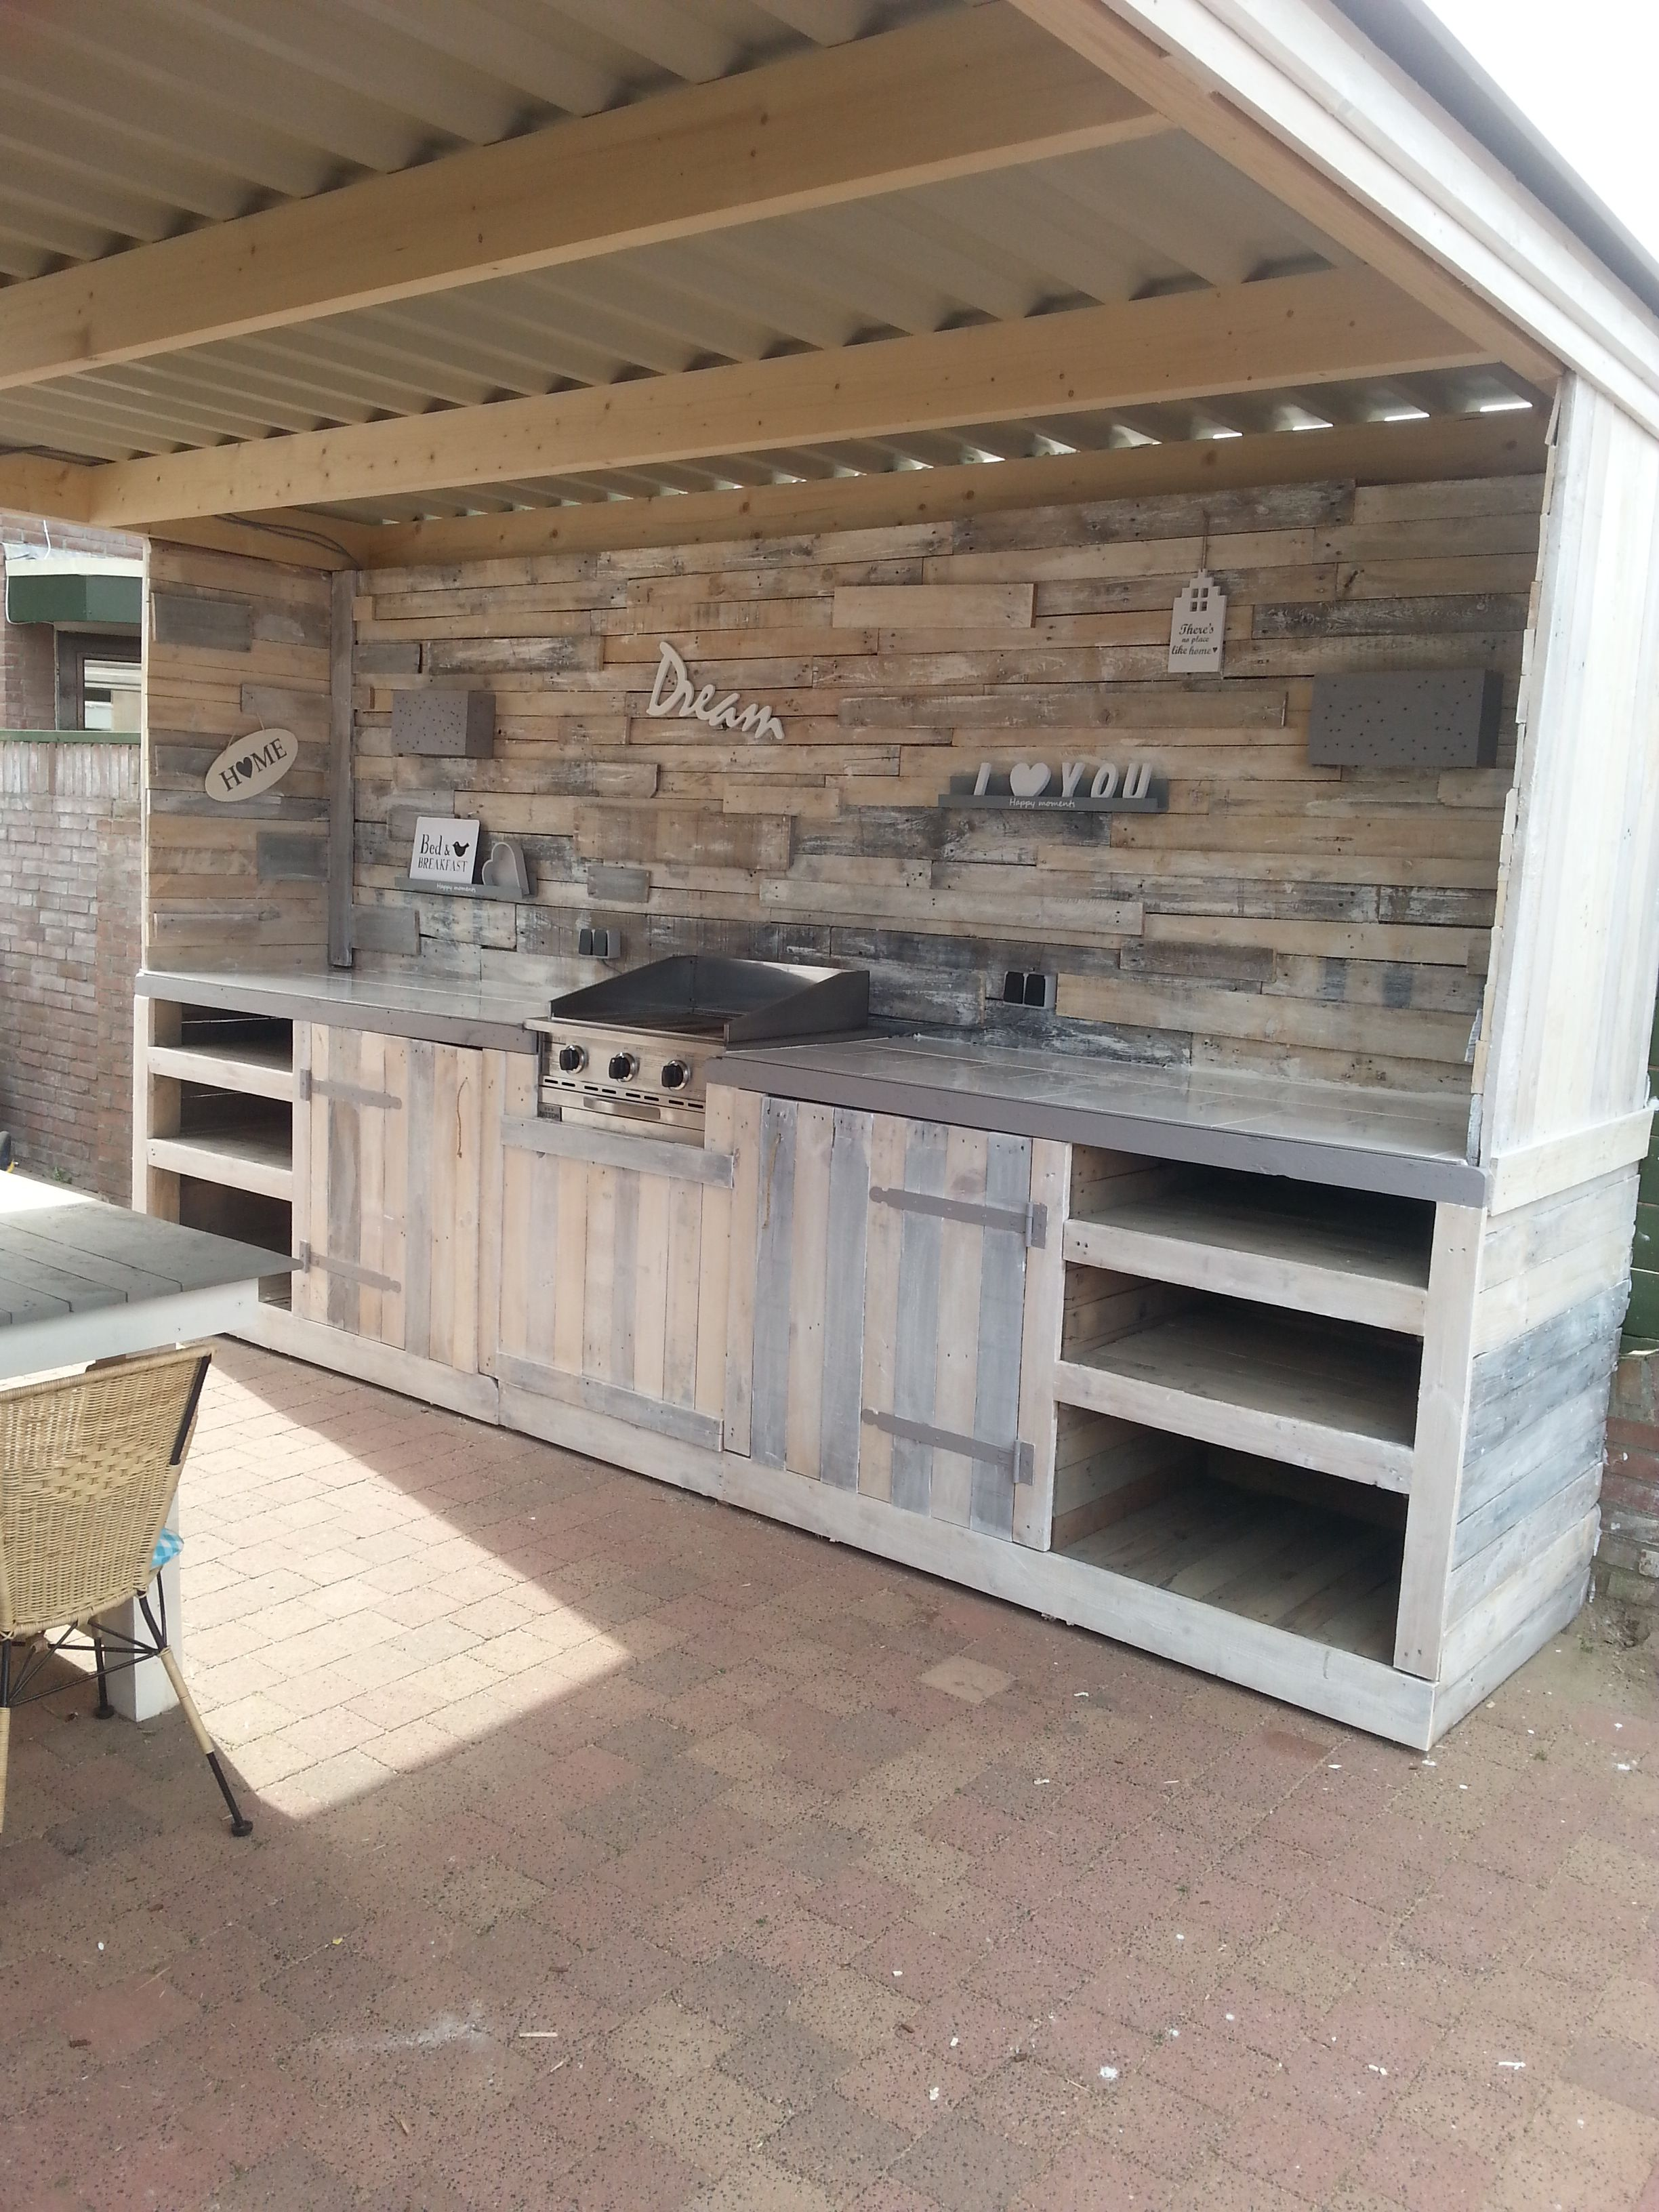 Must-see Pallet Outdoor Dream Kitchen | Gärten, Outdoor küche und ...